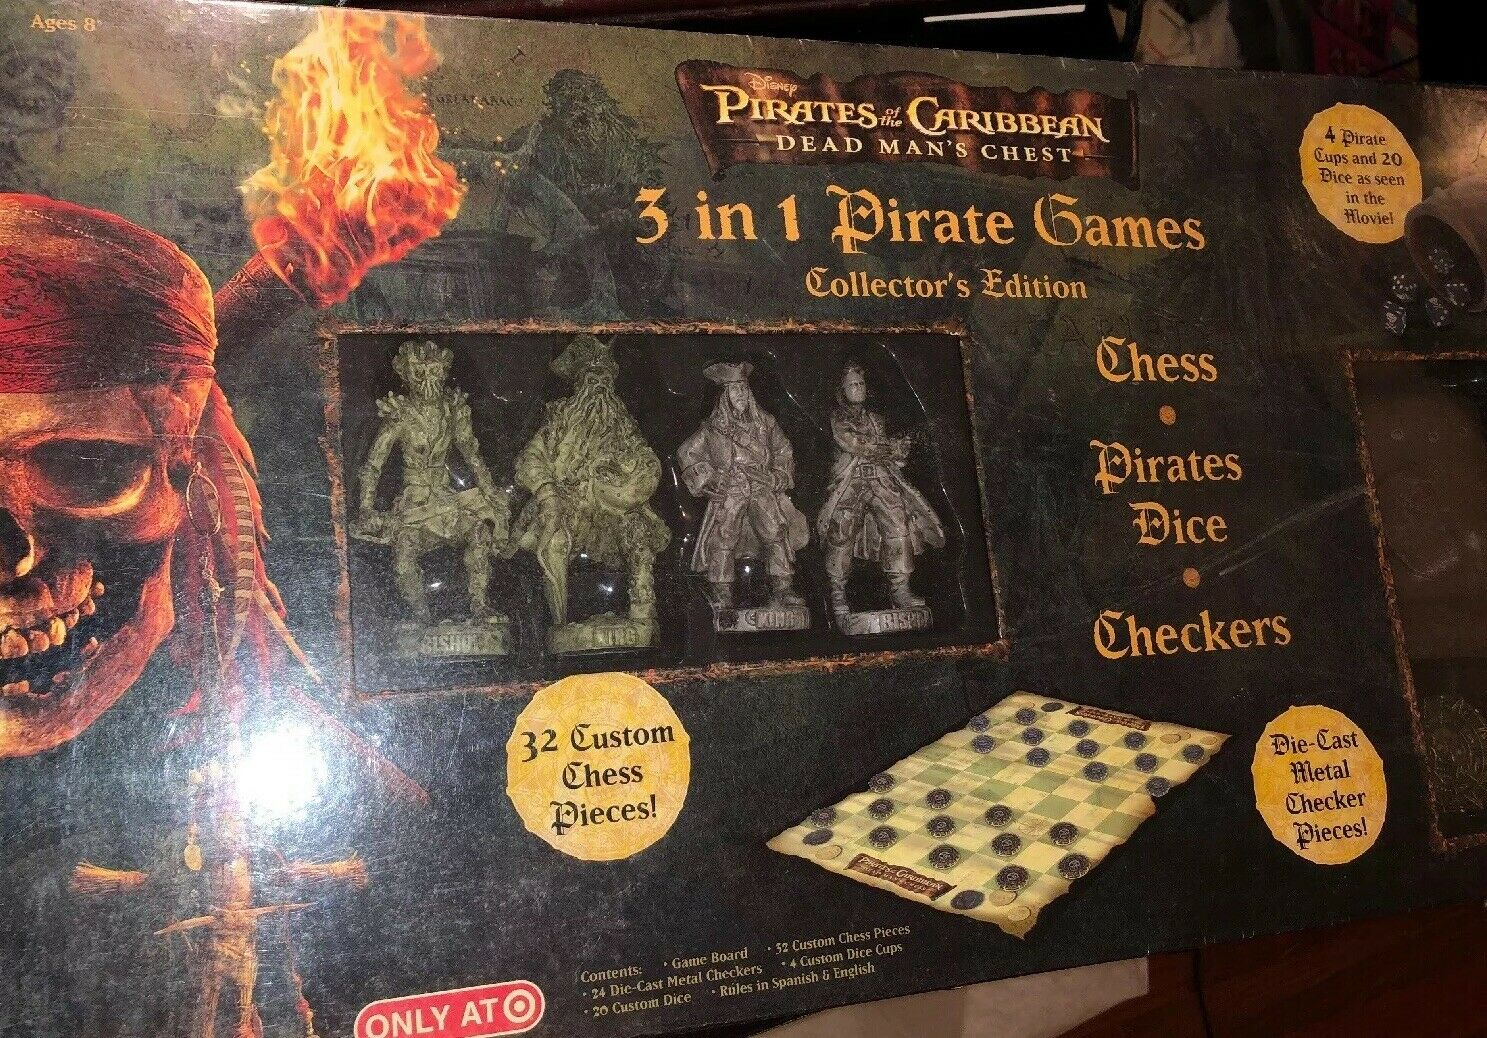 Pirates Of The Caribbean Dead Man's Chest 3 In 1 Pirate Game Sealed Chess++